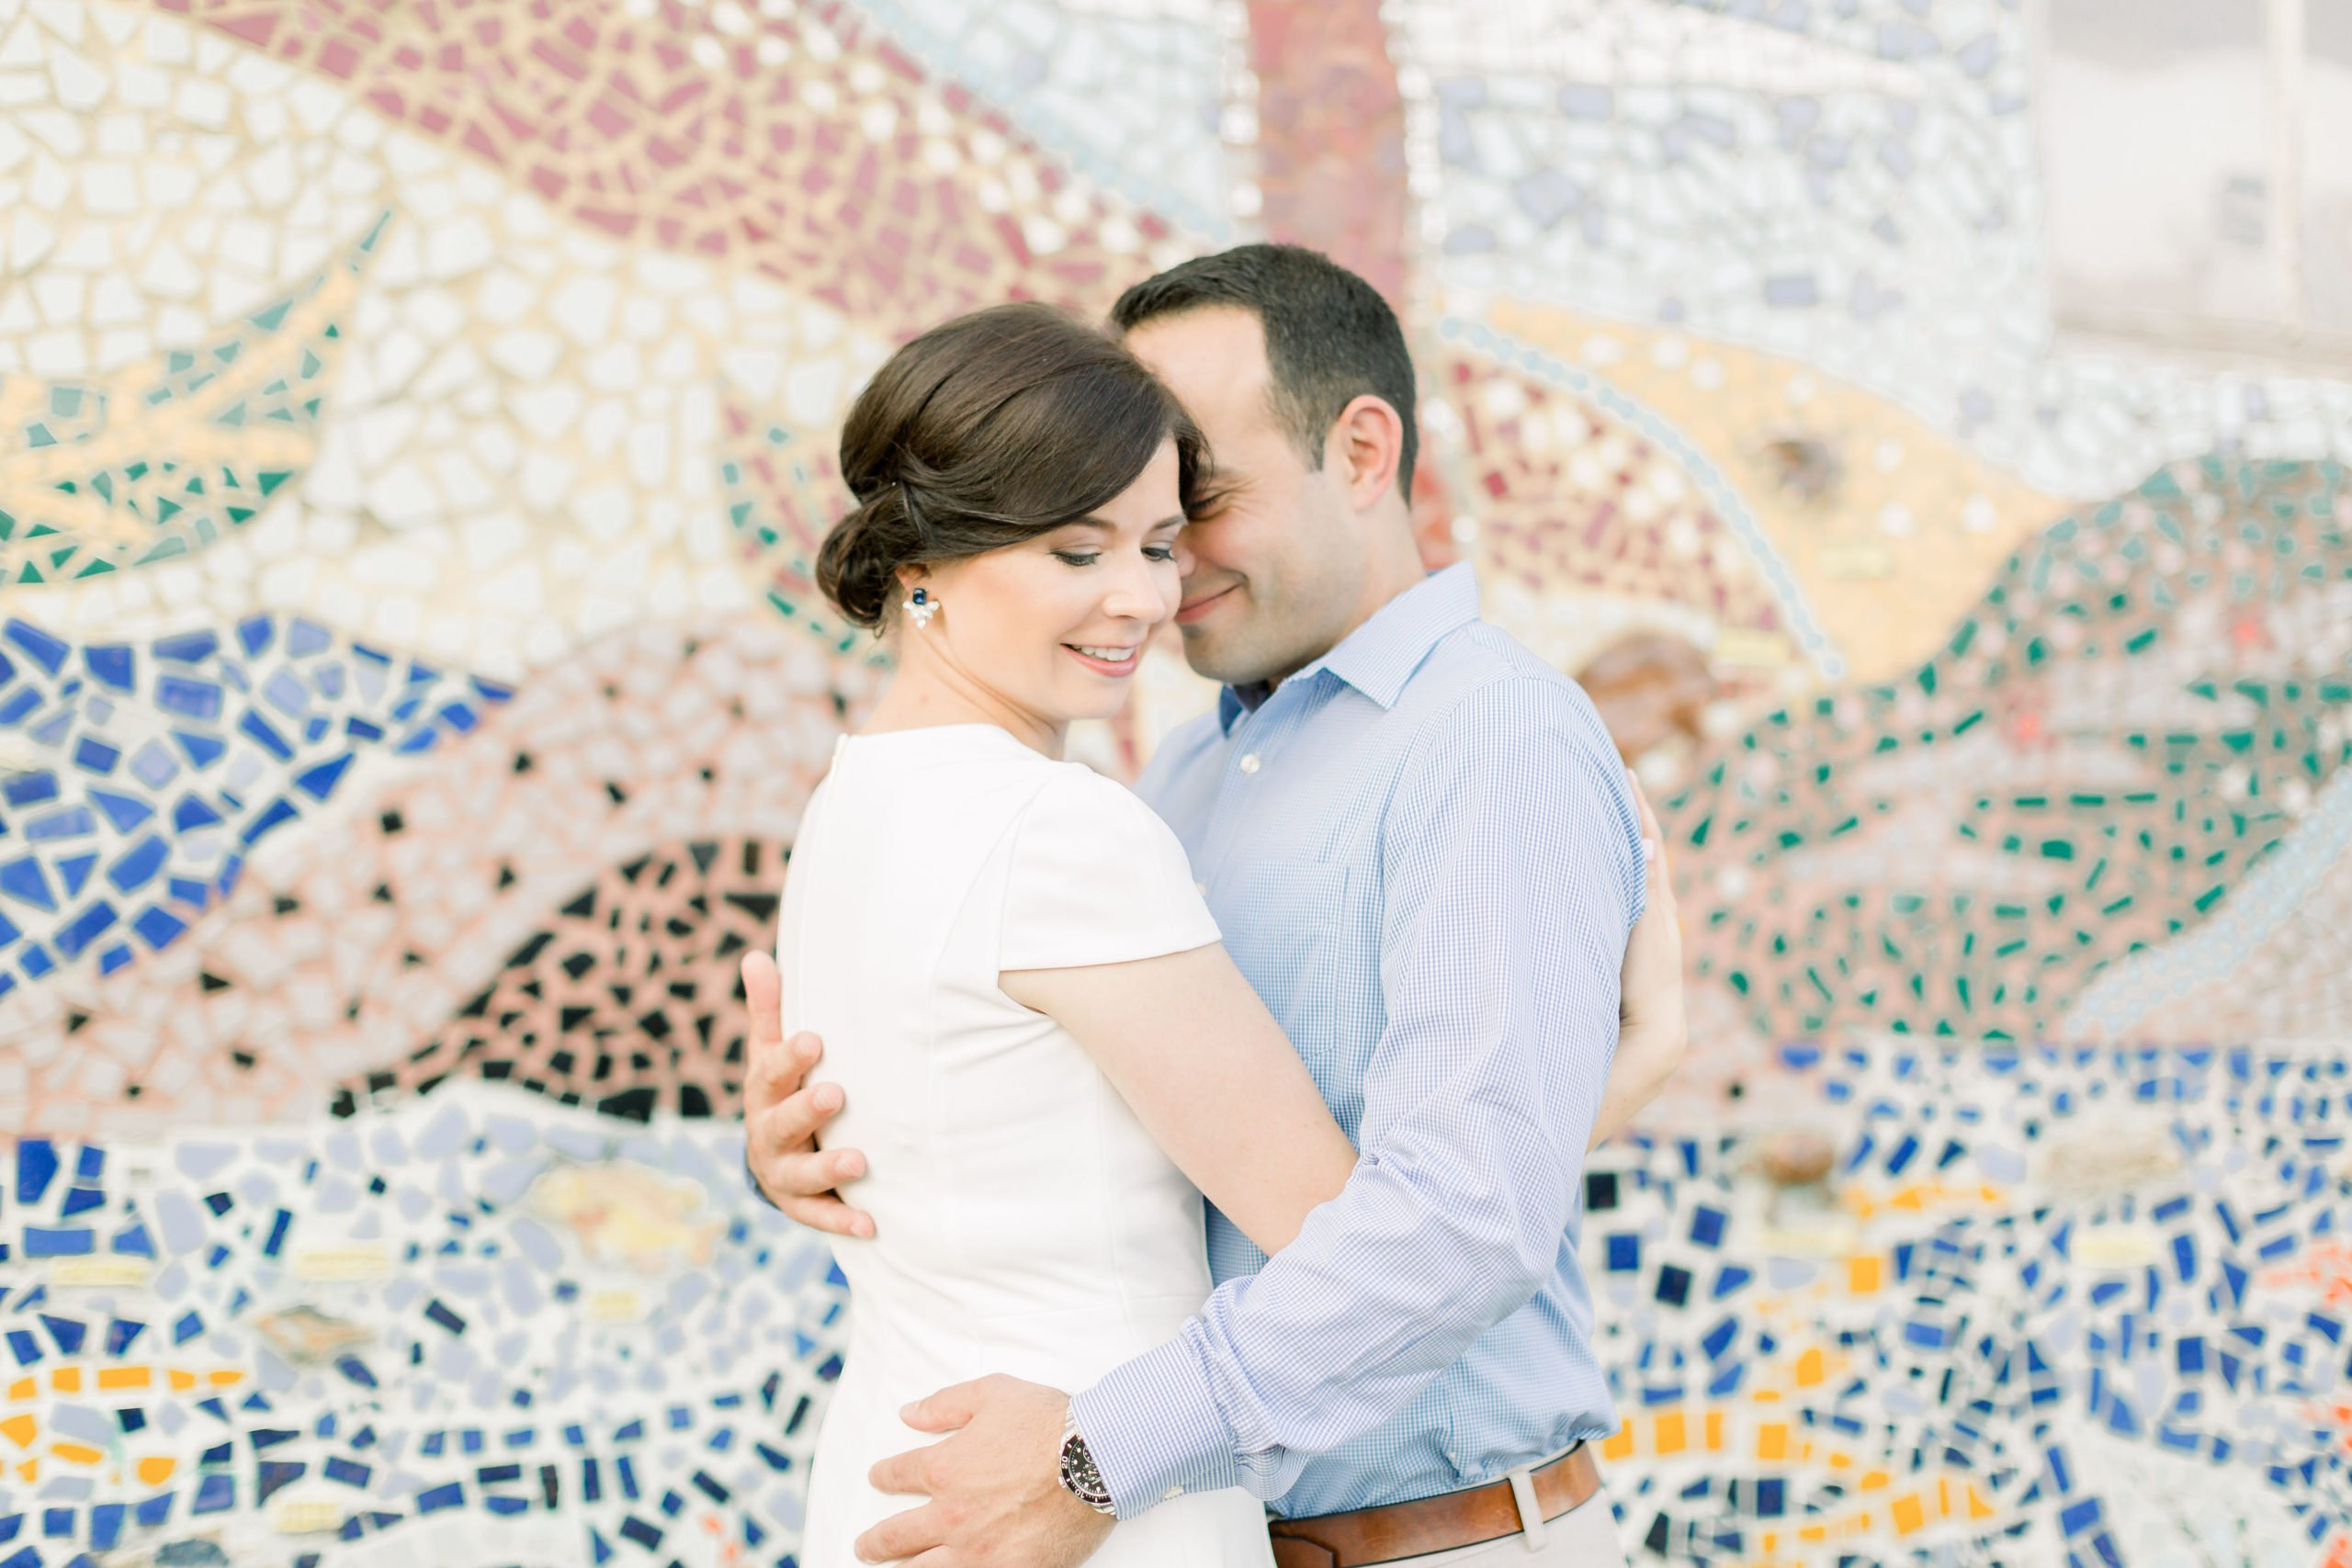 Couple Engagement Photo by mosaic wall